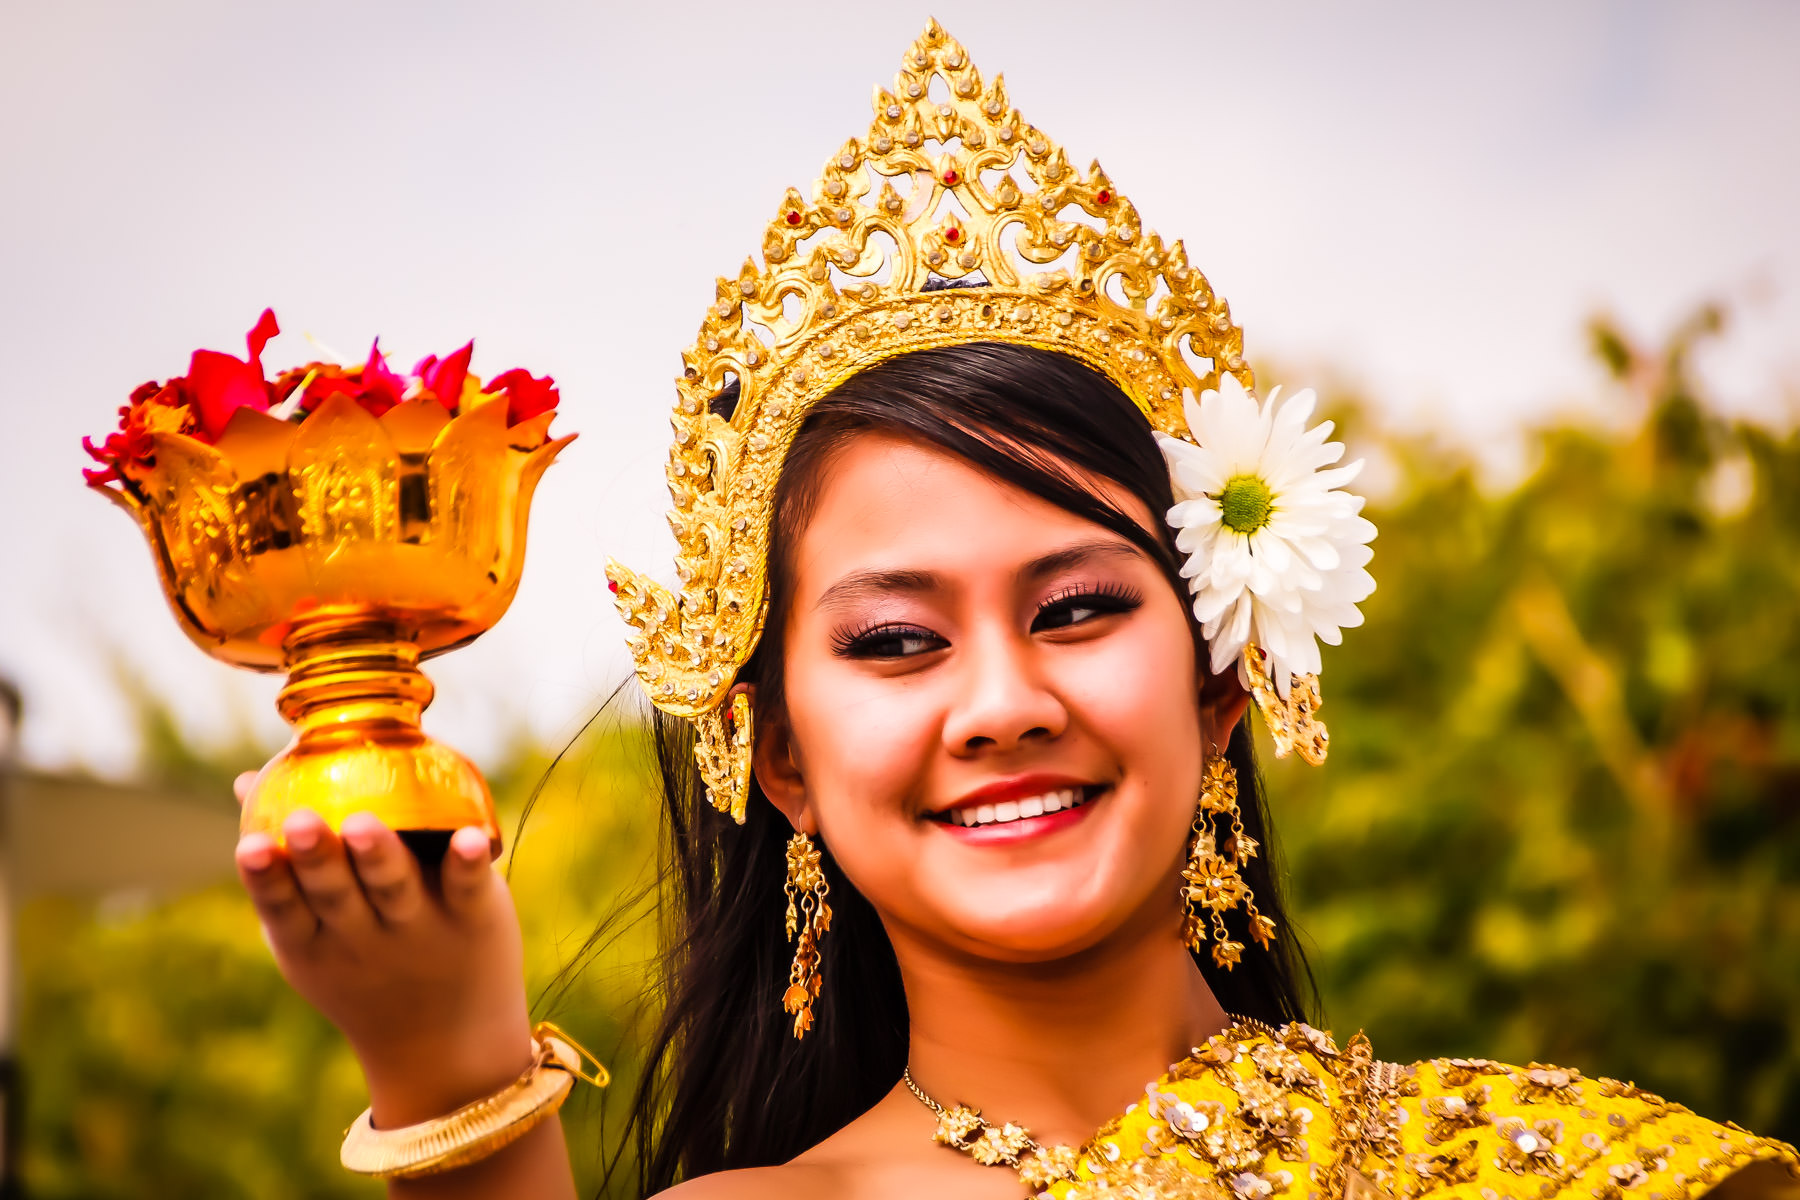 A dancer performs a traditional Cambodian luck dance (Robam chhun Por) at Addison Worldfest, Addison, Texas.